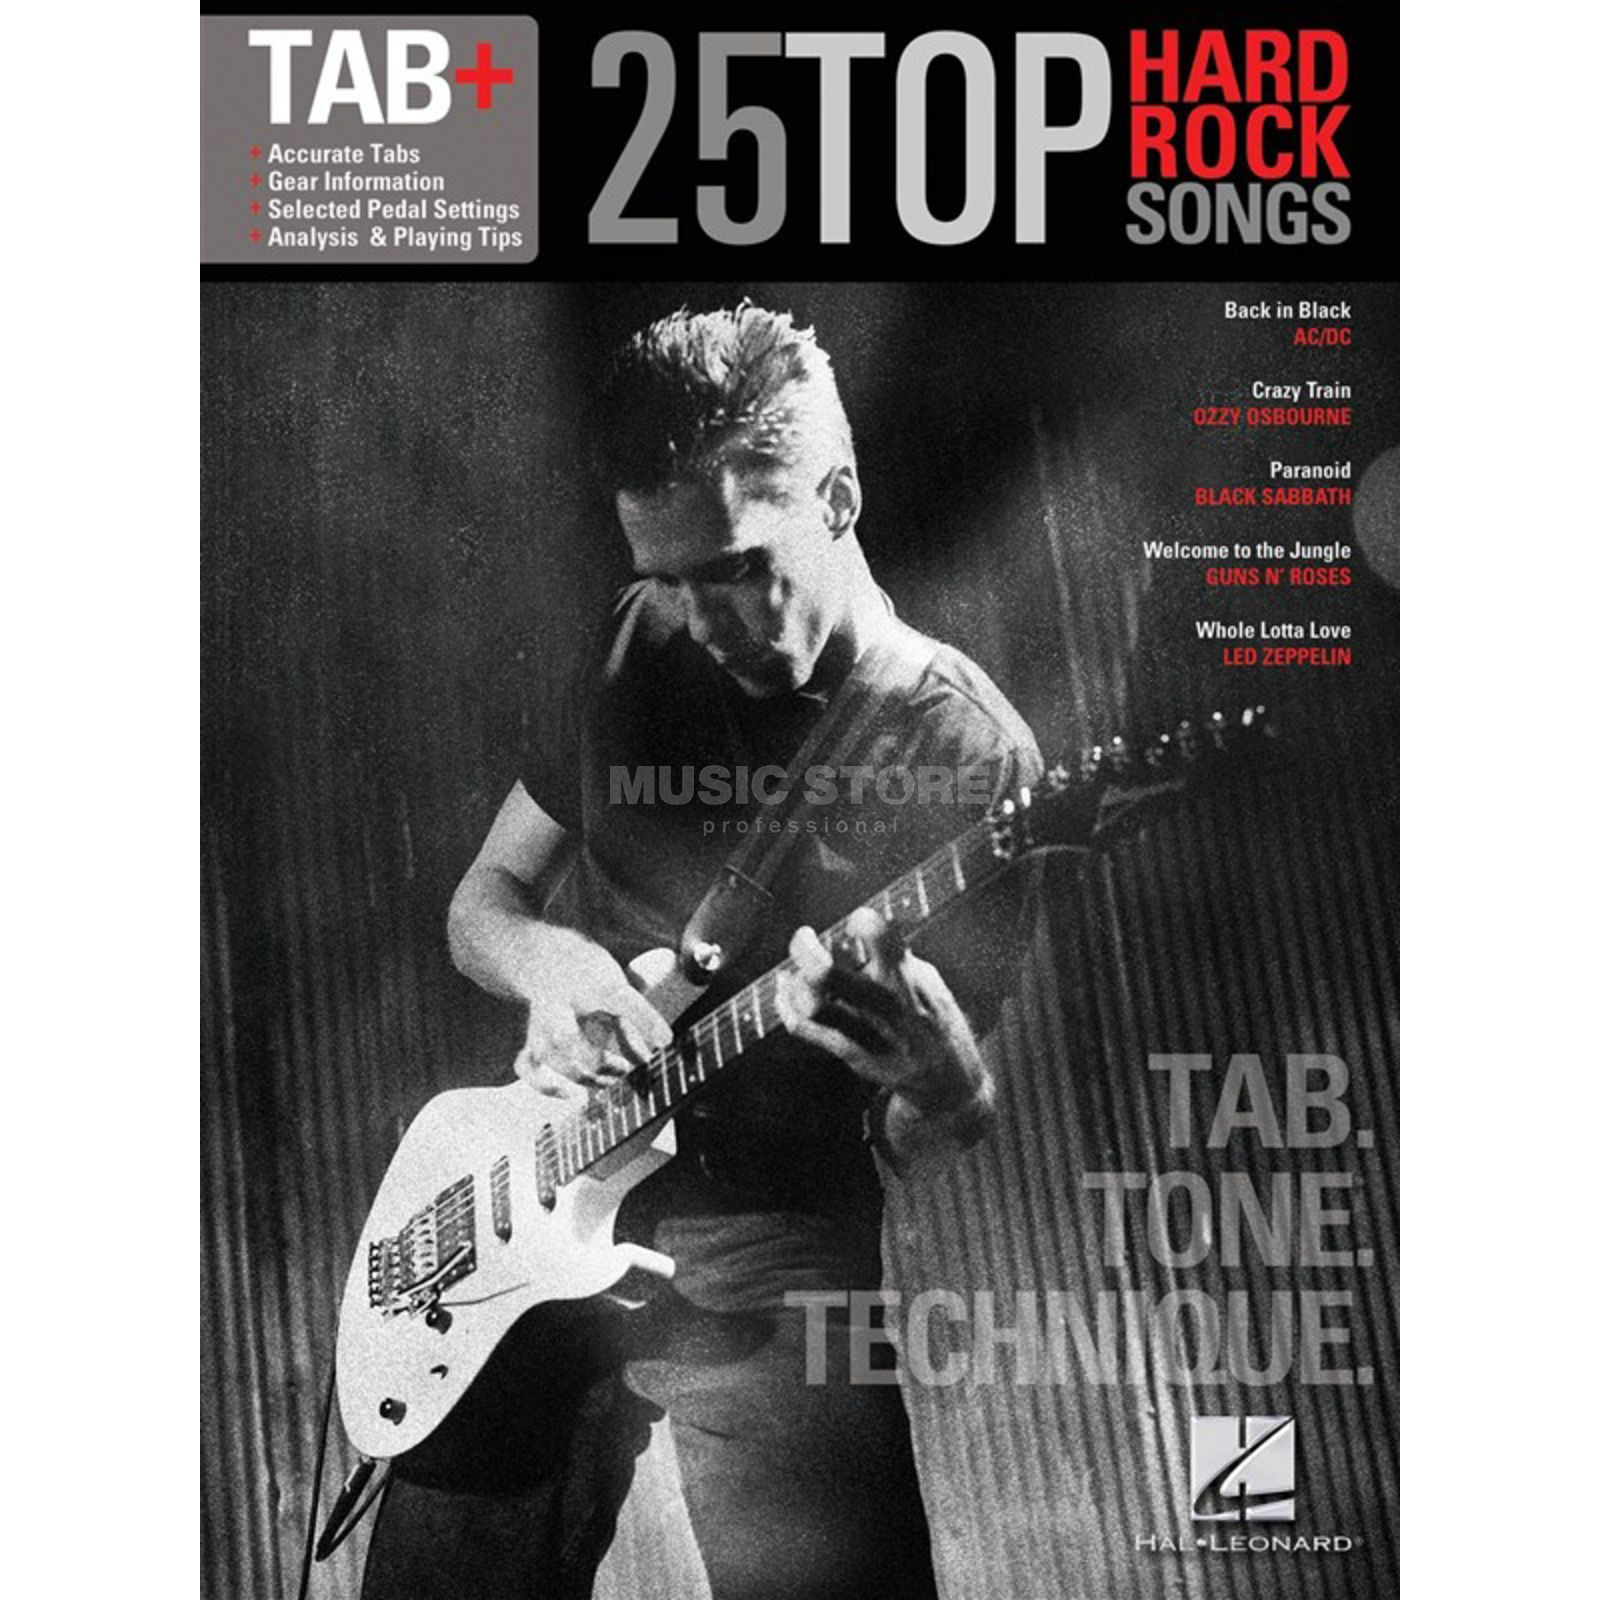 Hal Leonard Tab+: 25 Top Hard Rock Songs Tab. Tone. Technique Produktbild